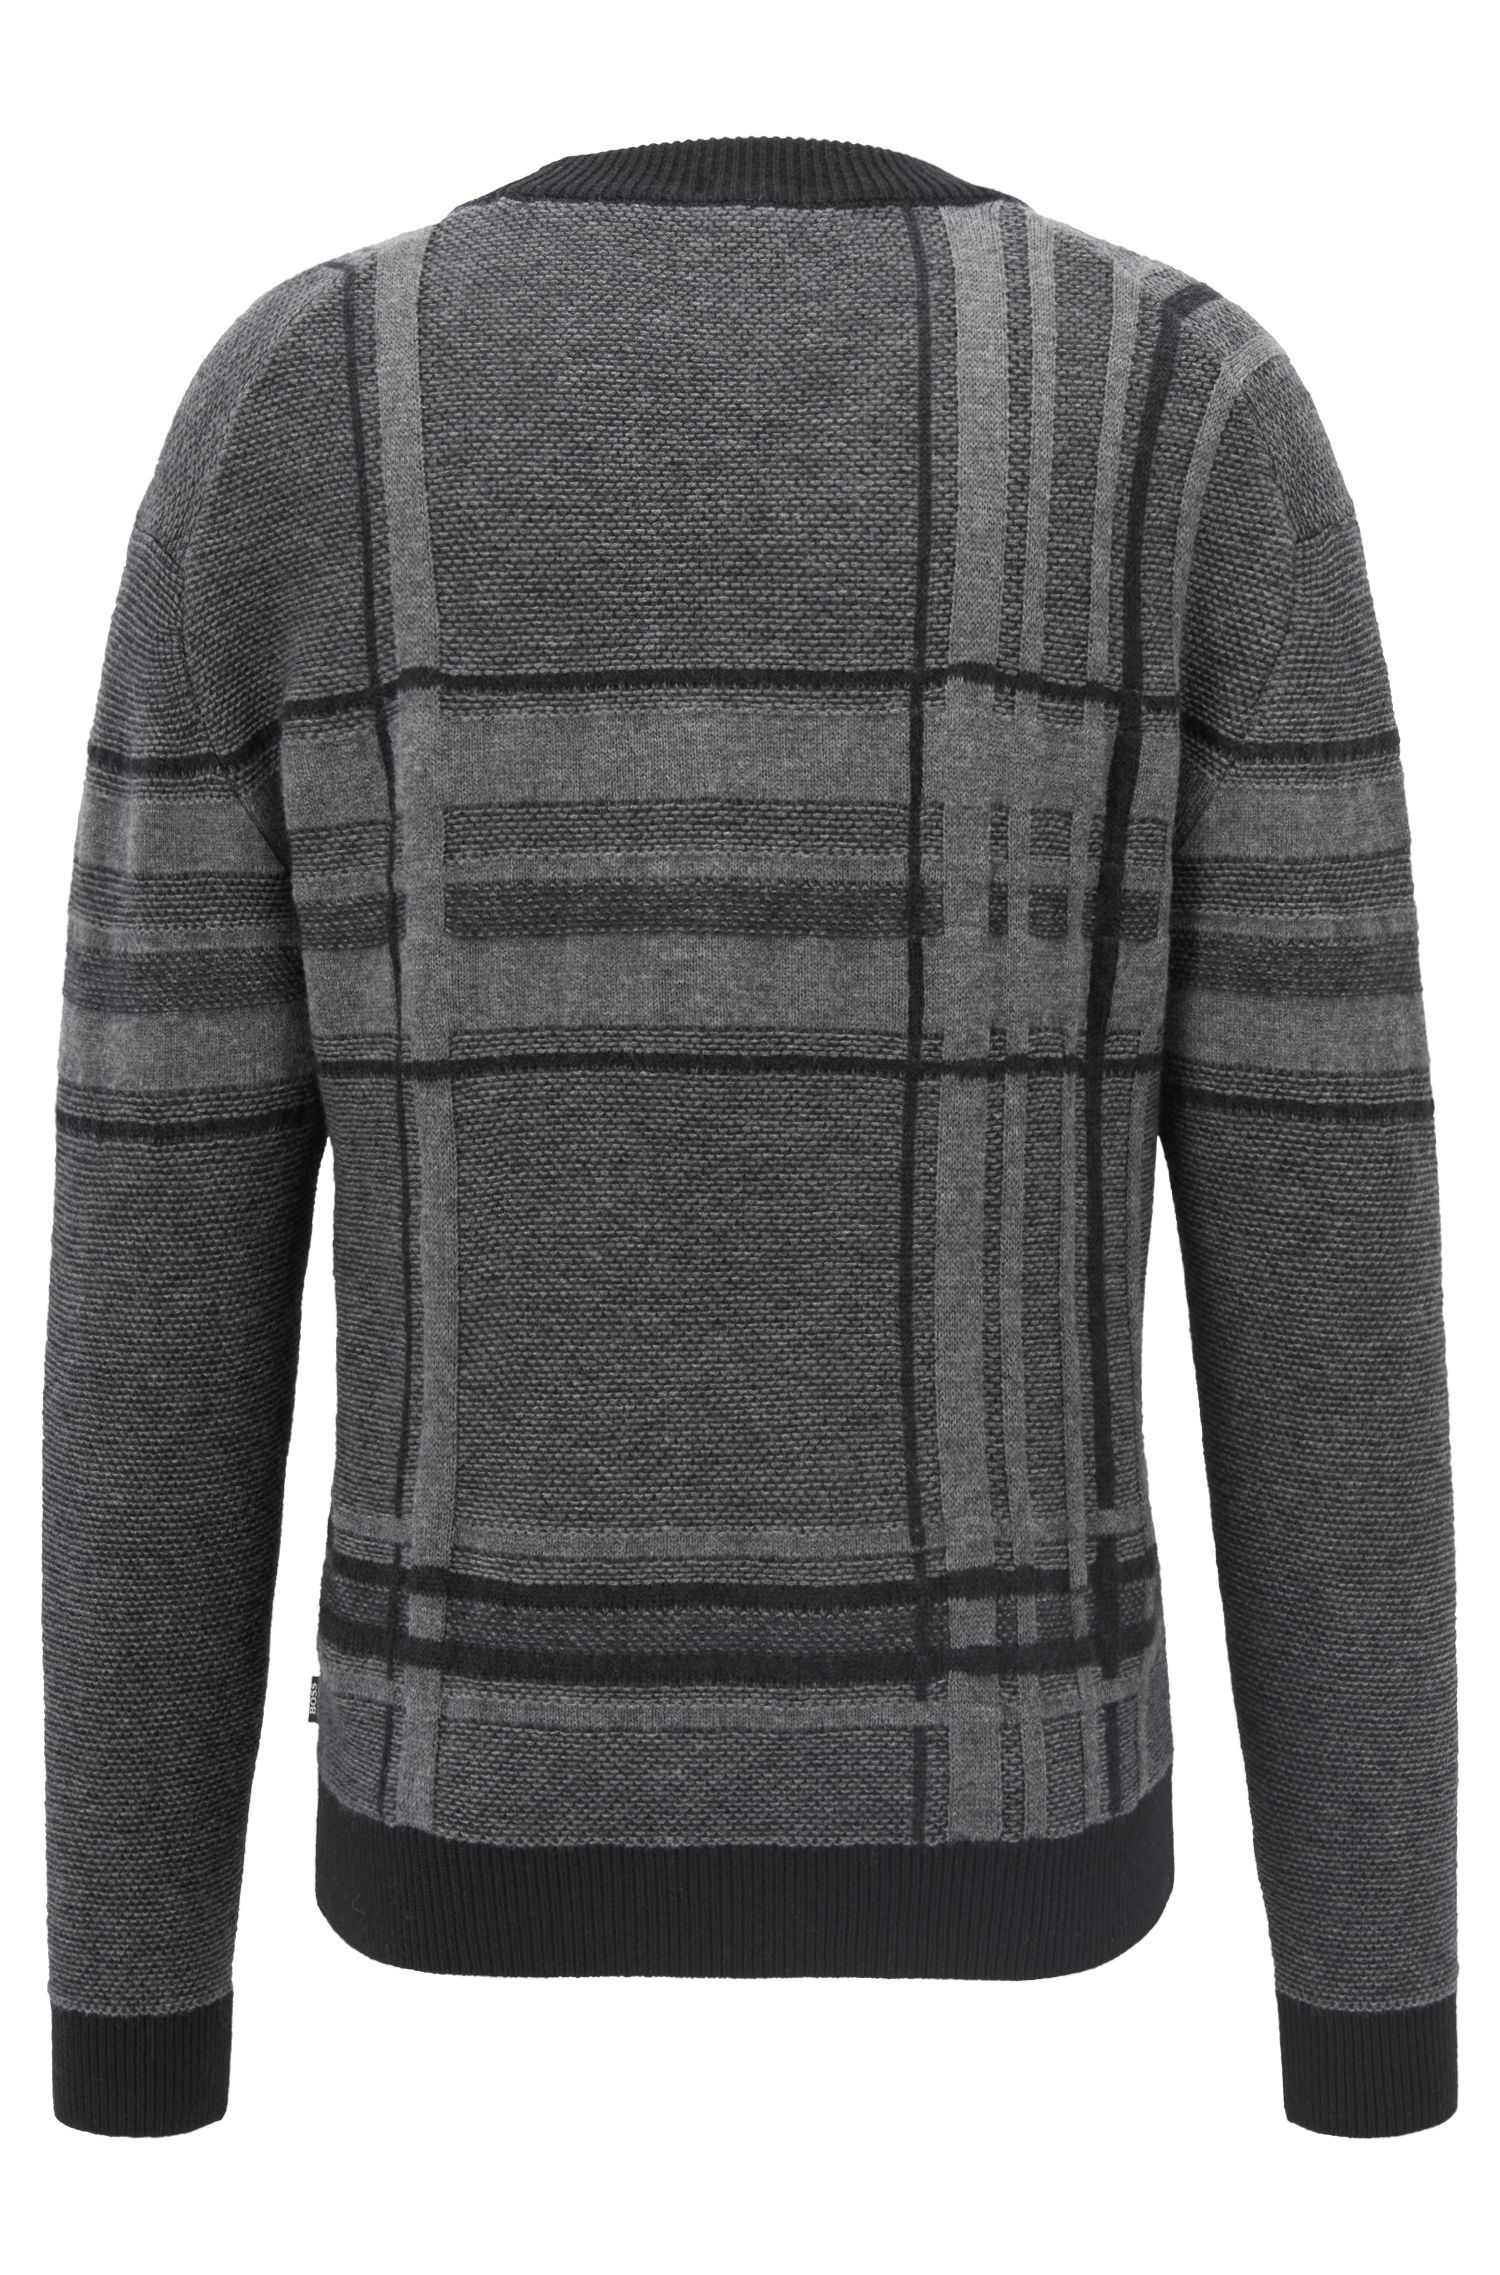 V-neck sweater in knitted large-scale check, Black